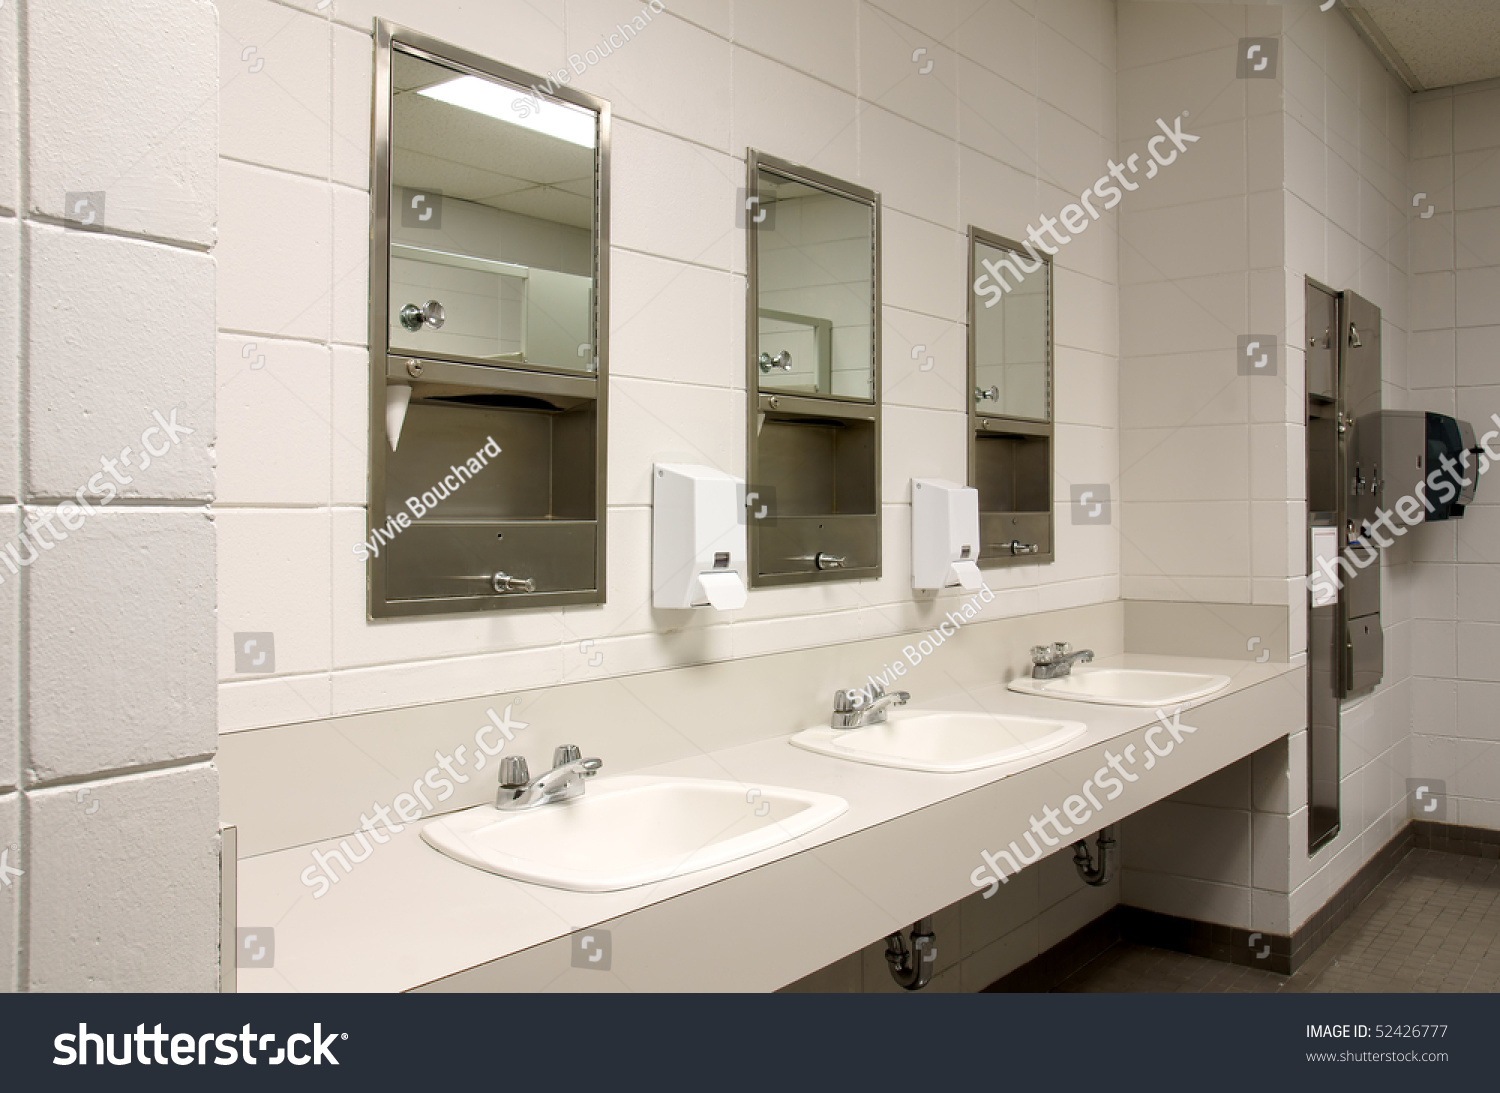 Perspective shot countertop three sinks mirors stock photo for Public bathroom sink